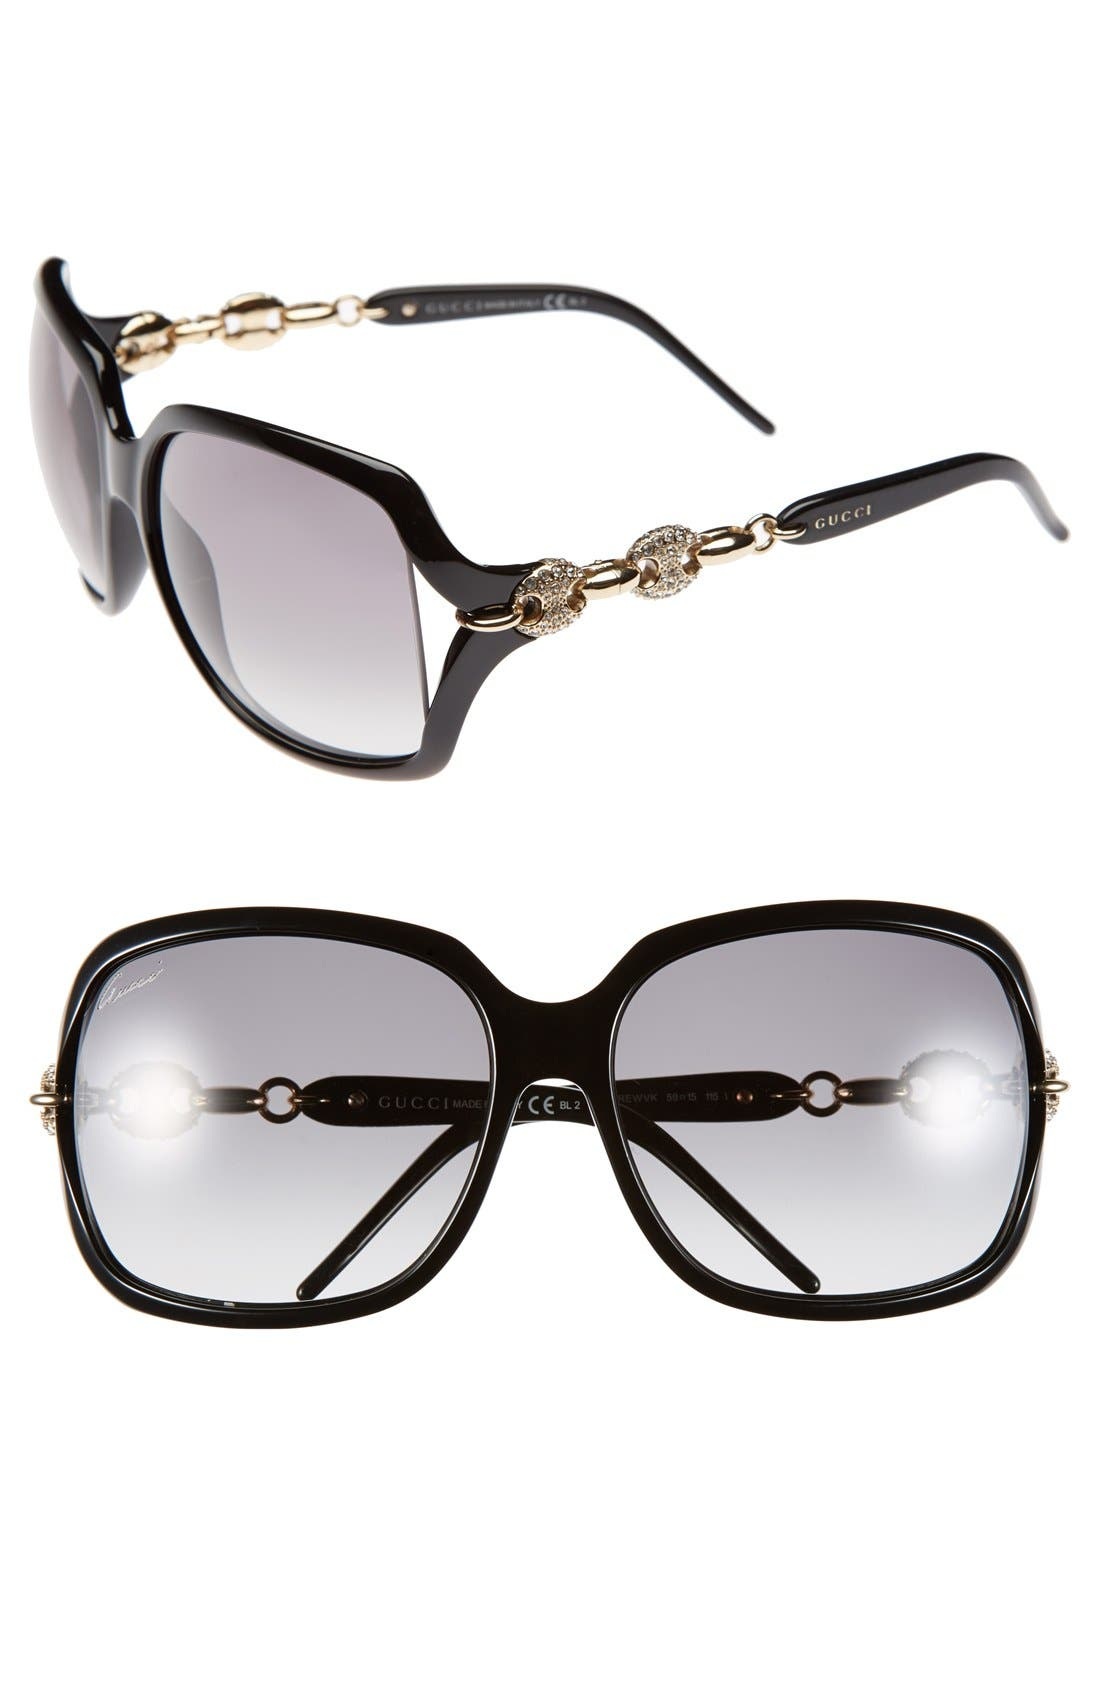 Alternate Image 1 Selected - Gucci 'Marina Chain' 59mm Swarovski Crystal Sunglasses